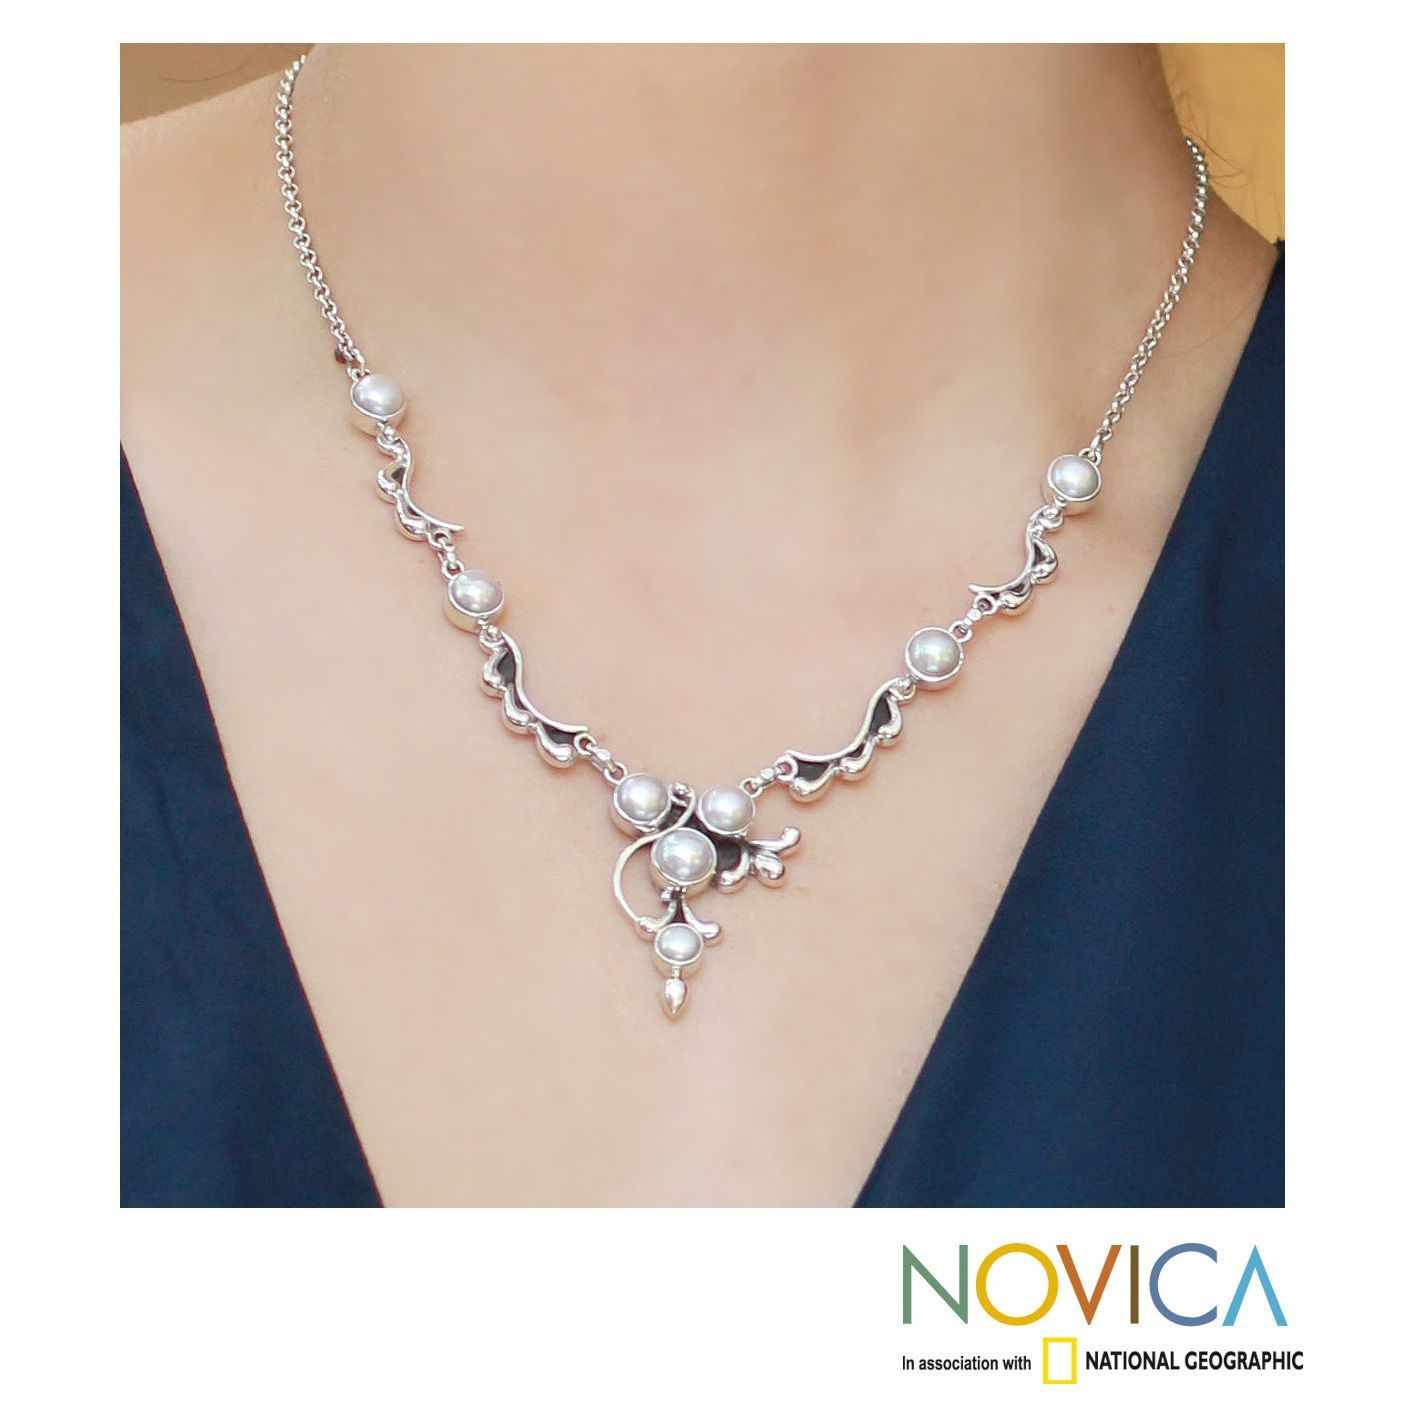 Accentuating white pearls, sterling silver is a shining complement in this necklace from India. The gemstones are ravishing in a necklace designed by Neeru Goel.